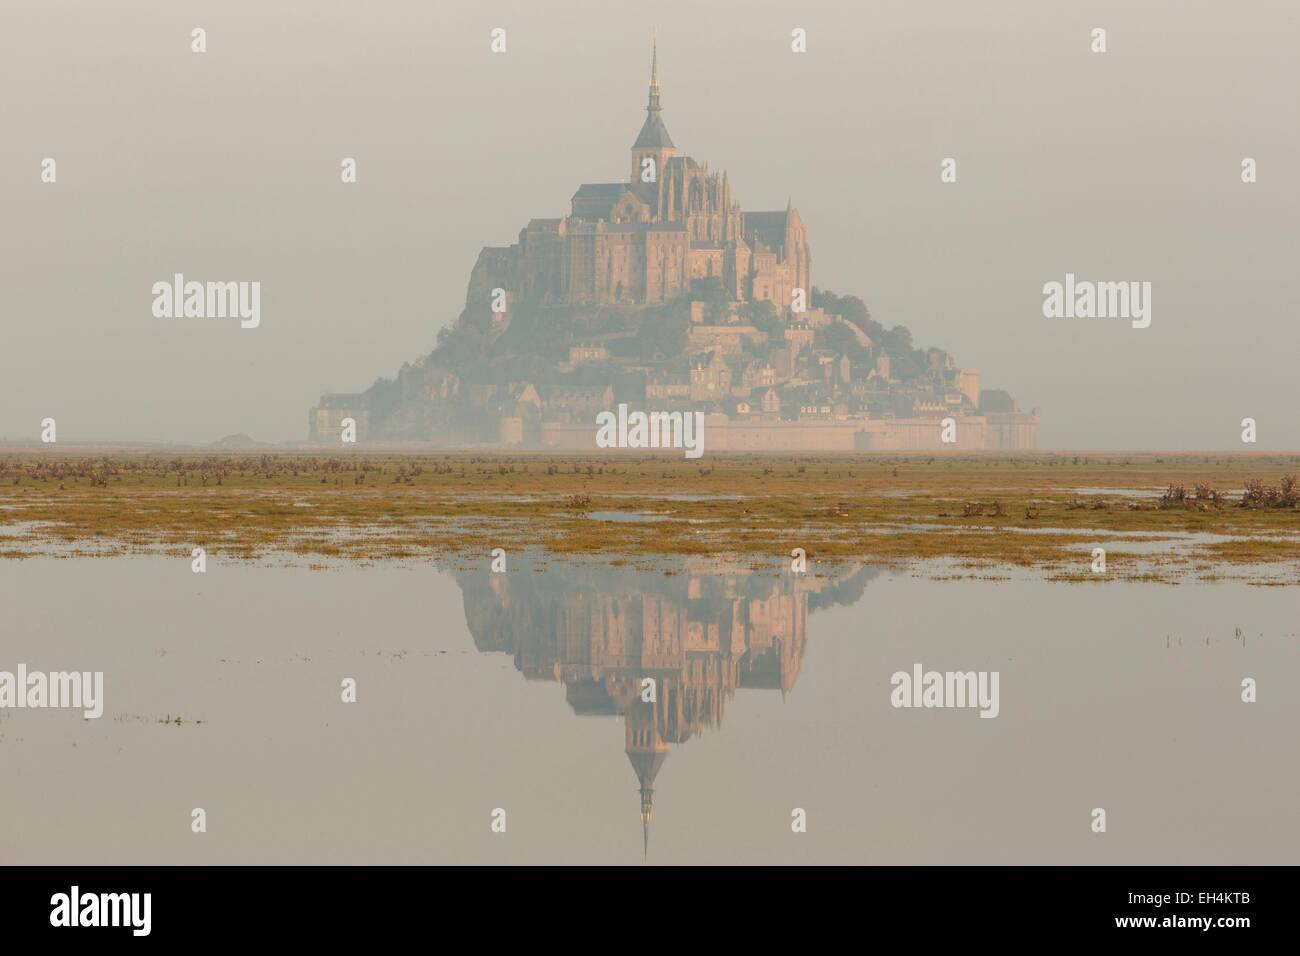 France, Manche, Mont Saint Michel bay, listed as World Heritage by UNESCO, Mont Saint Michel at high tide - Stock Image